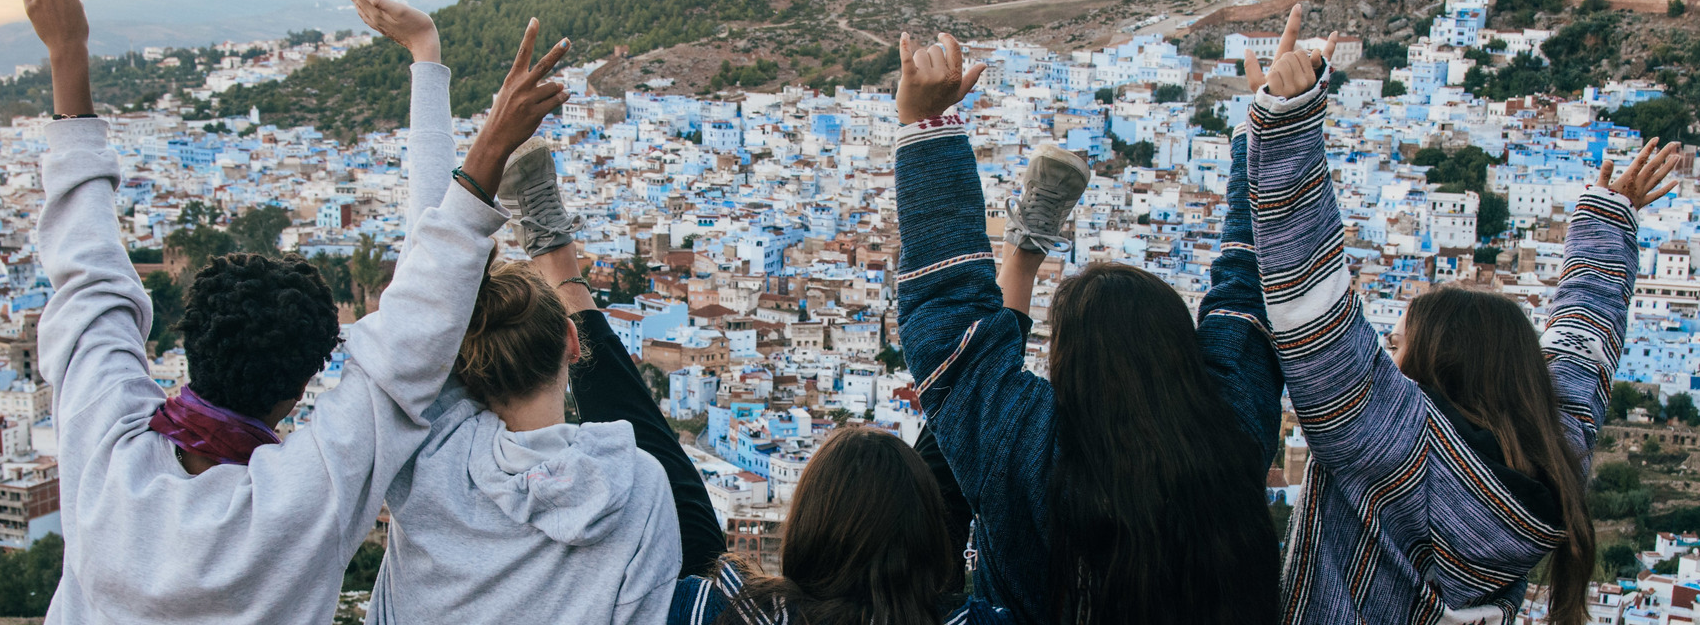 students with arms raised looking out at landscape